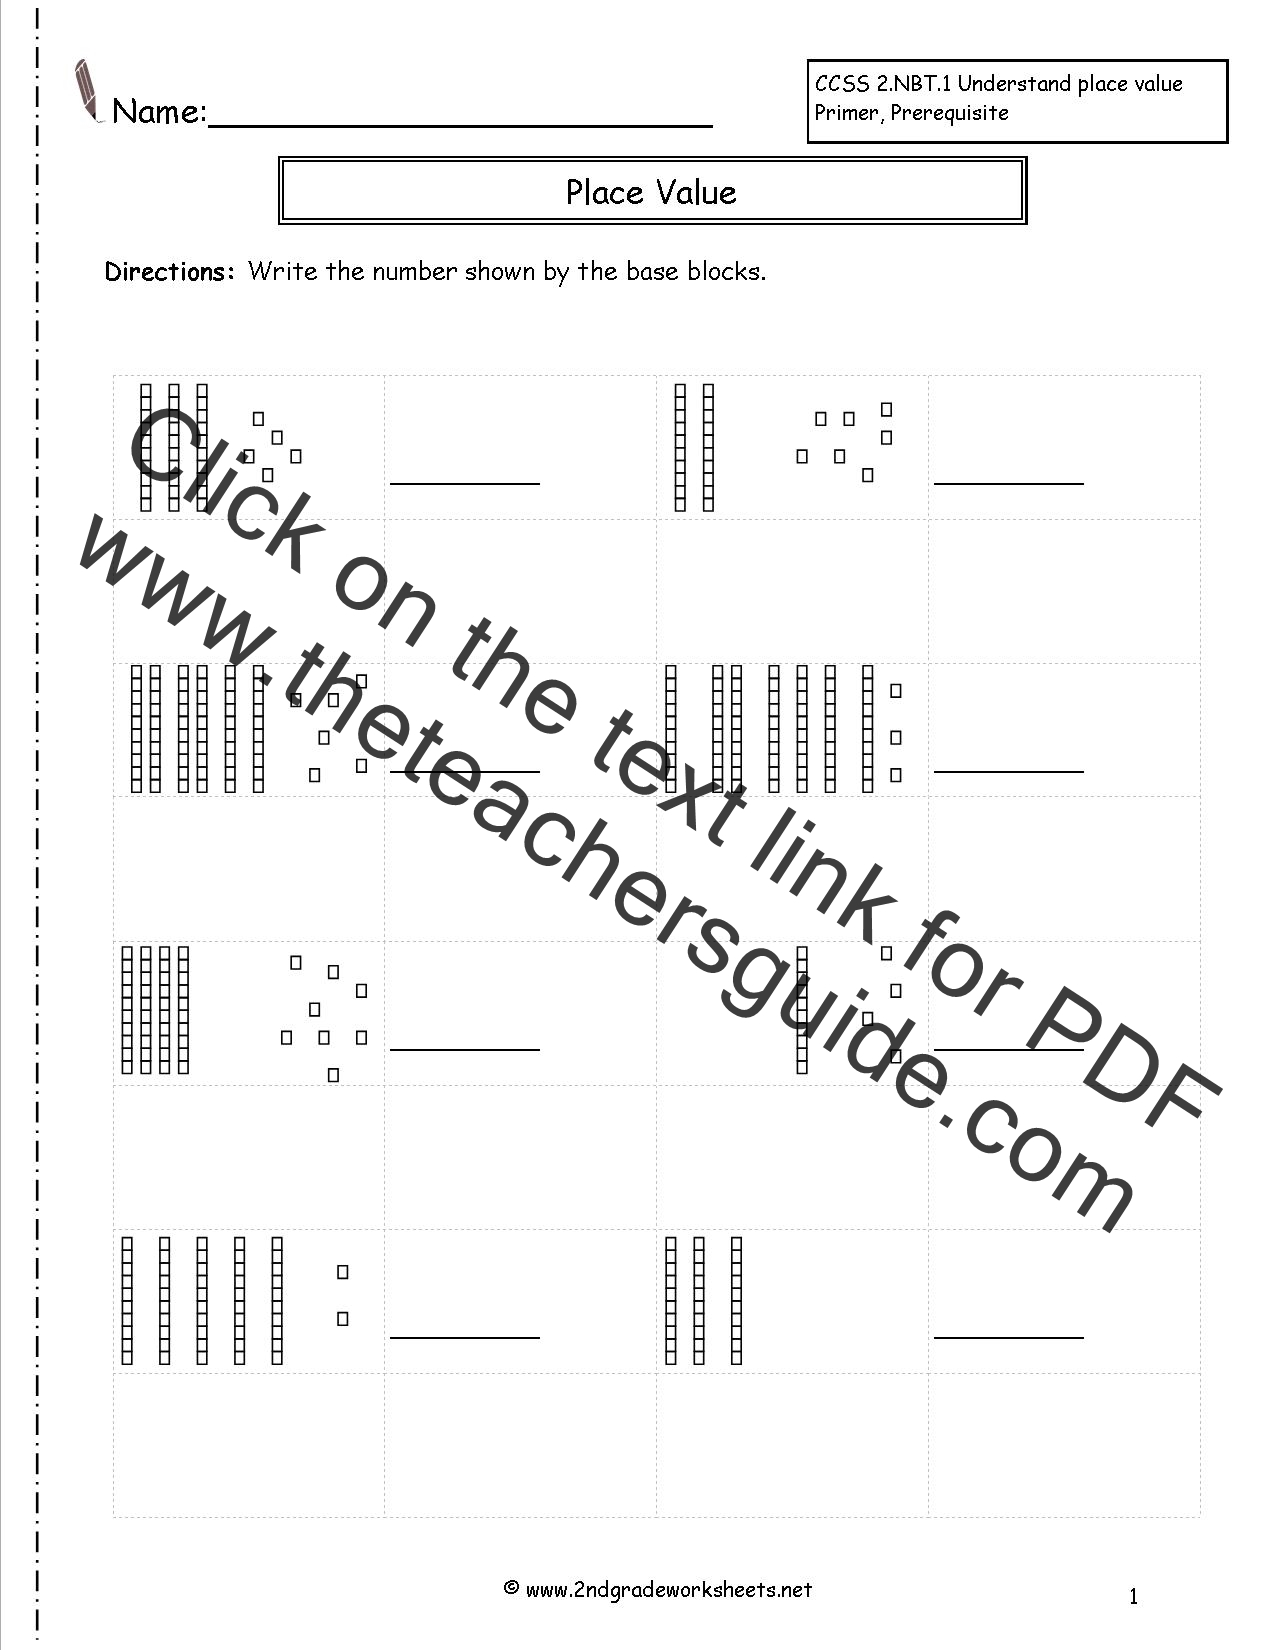 math worksheet : second grade place value worksheets : Free Printable Math Worksheets 2nd Grade Place Value